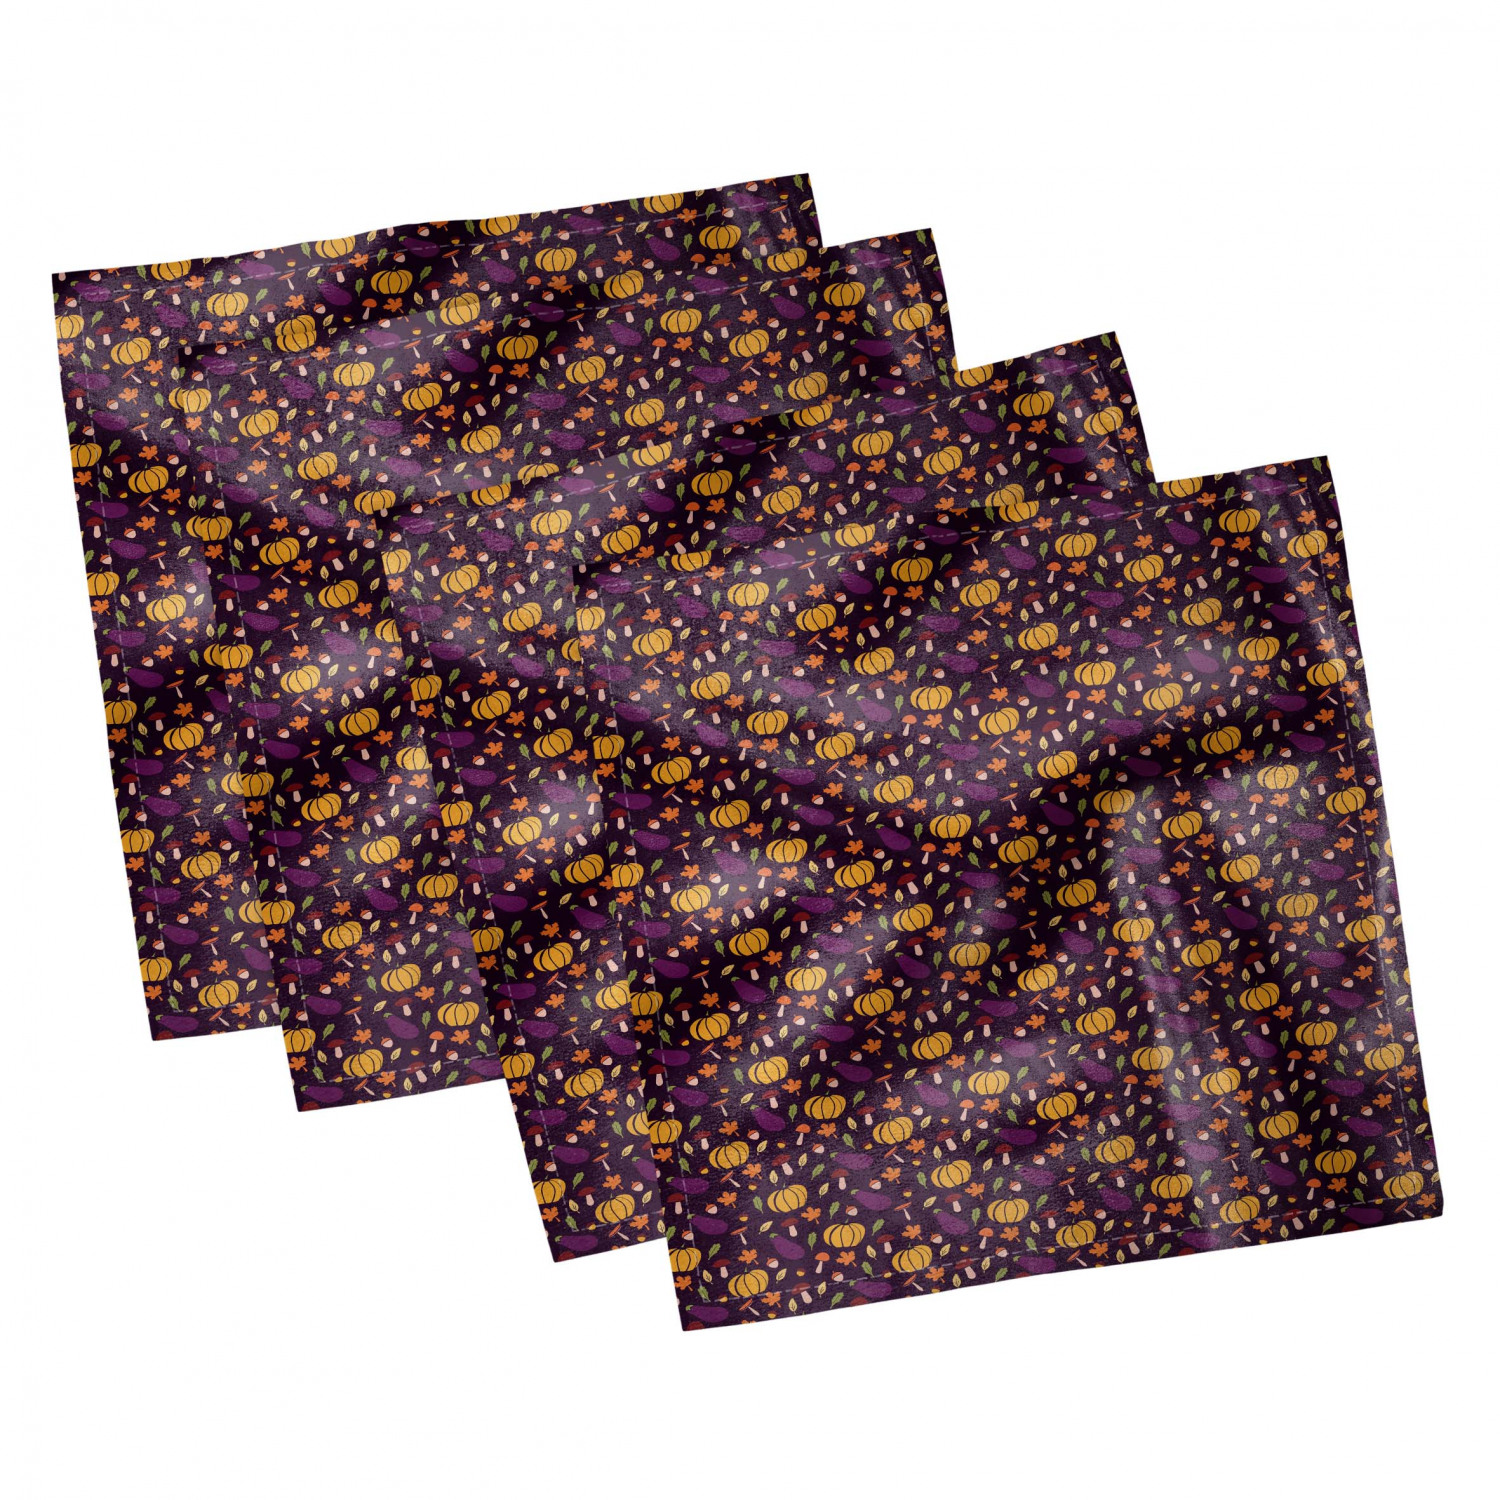 thumbnail 91 - Ambesonne-Autumn-Fall-Decorative-Satin-Napkins-Set-of-4-Party-Dinner-Fabric